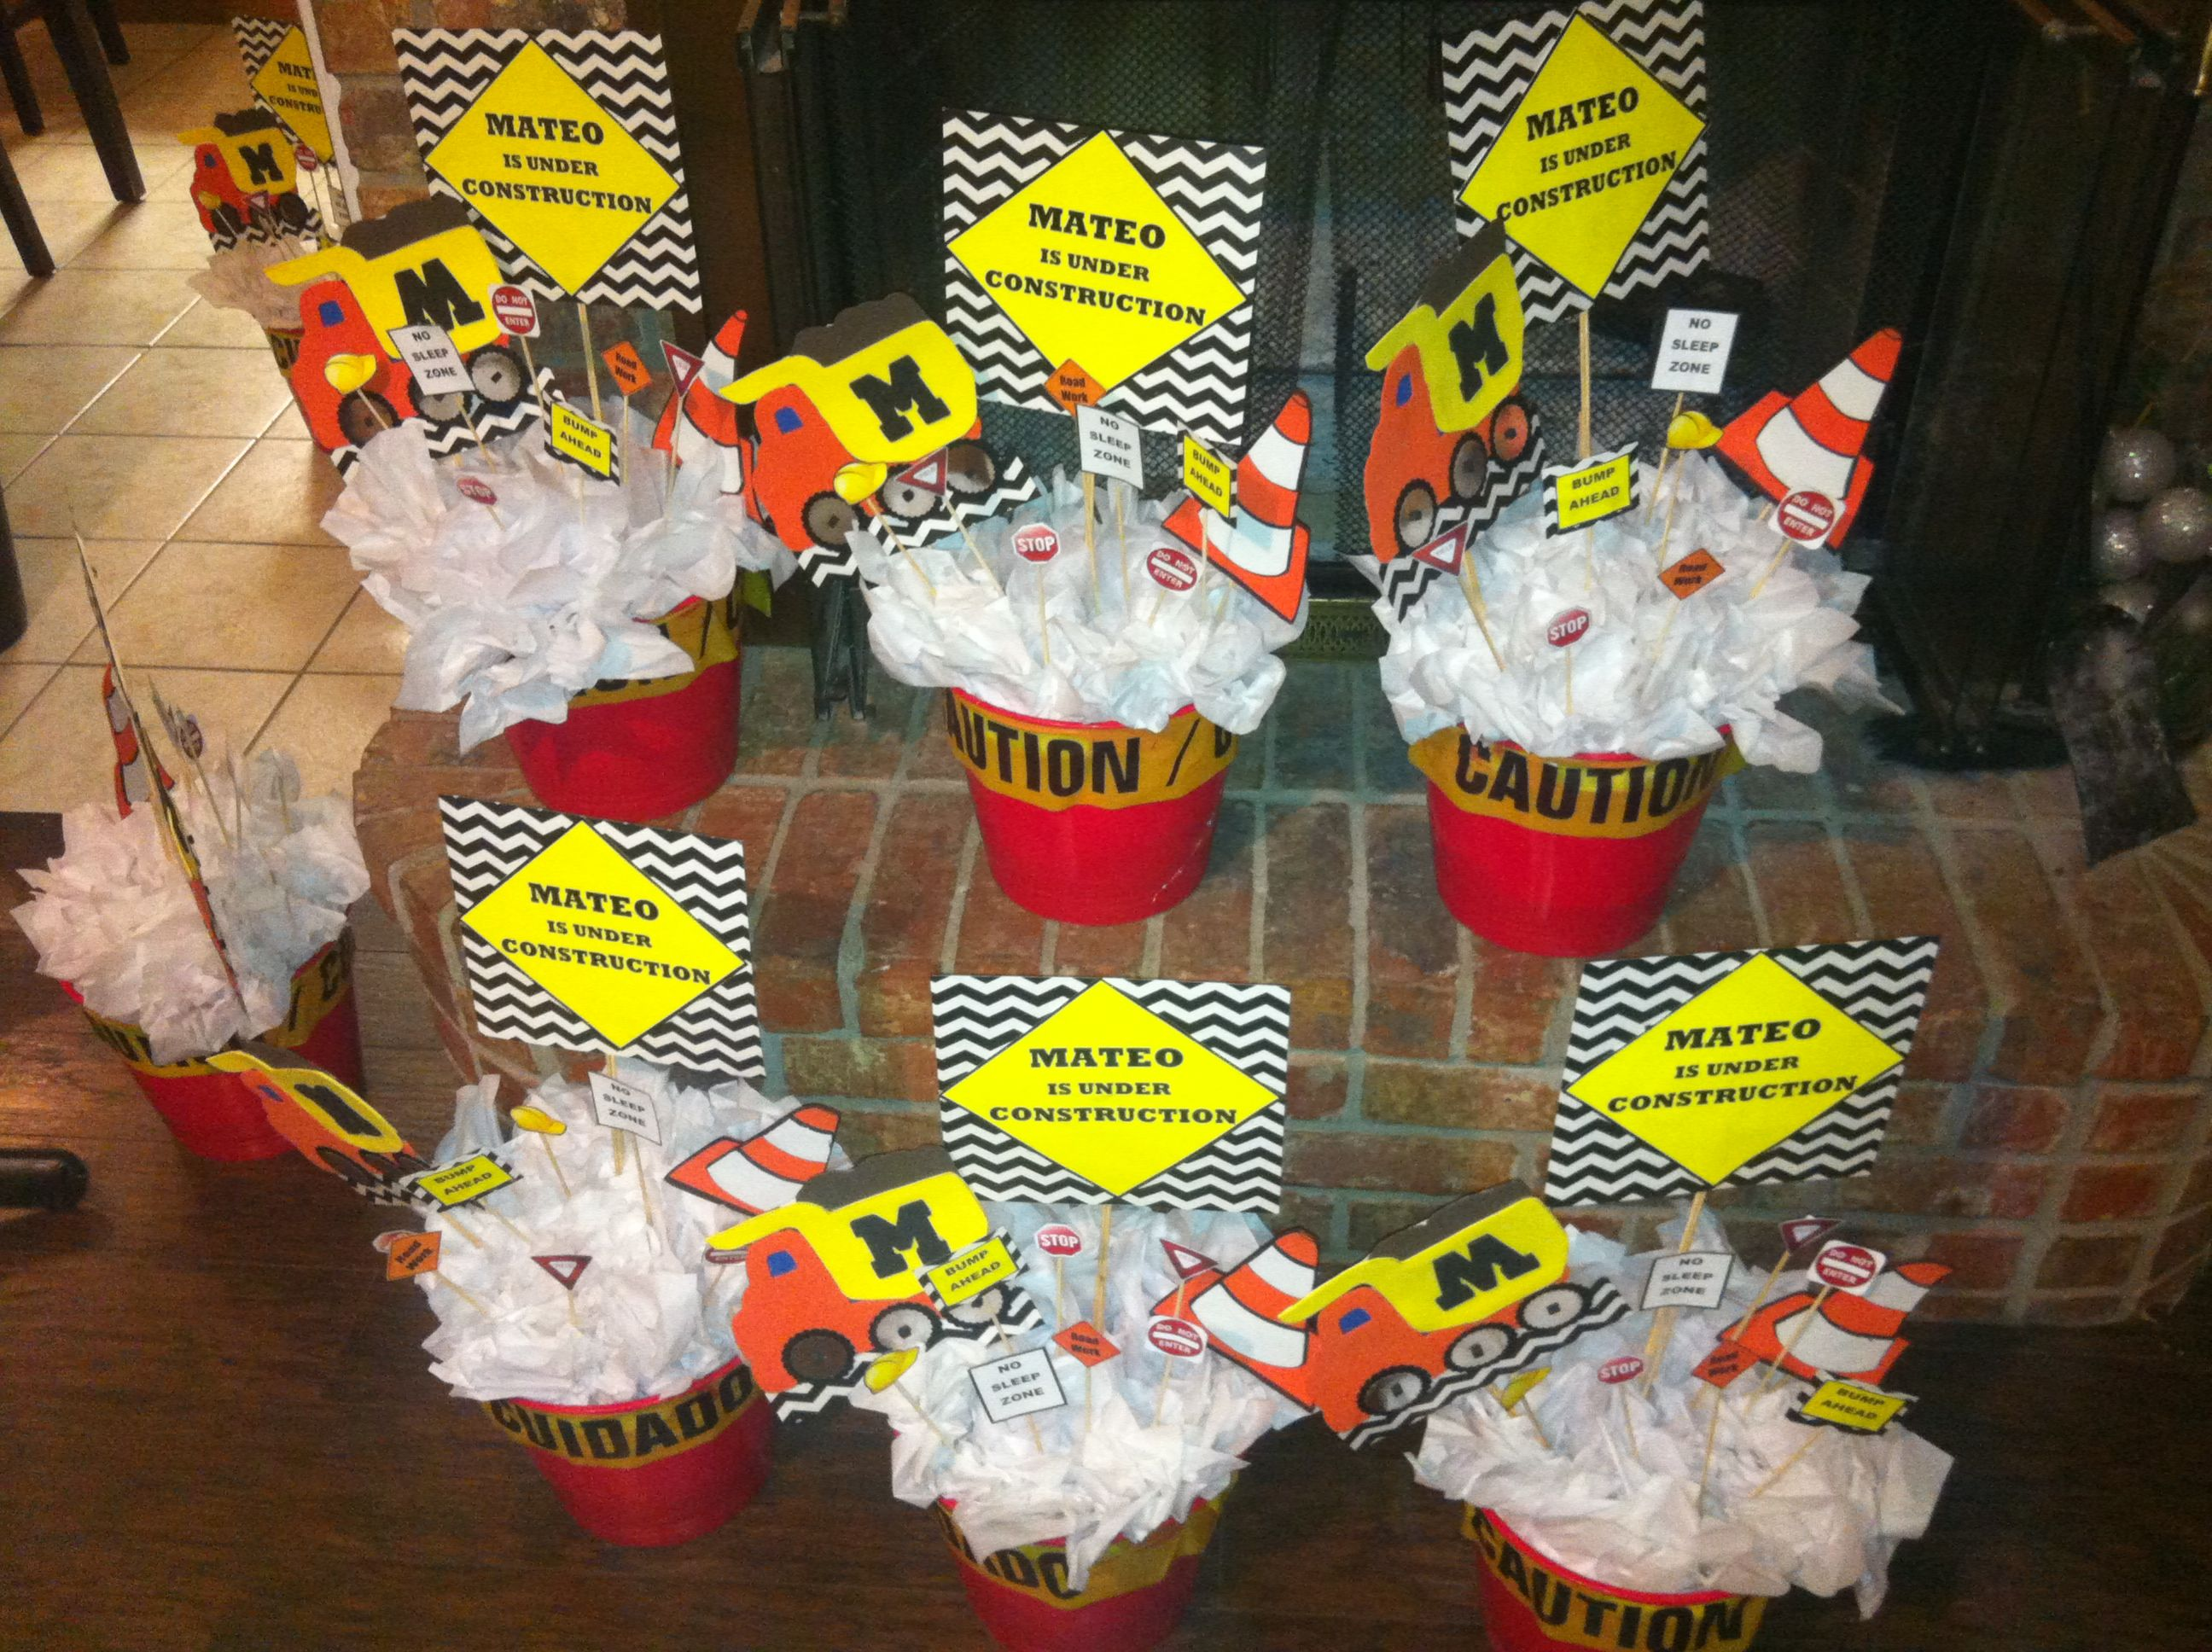 Centerpieces For Under Construction Baby Shower We Bought Buckets From The Dollar Tree